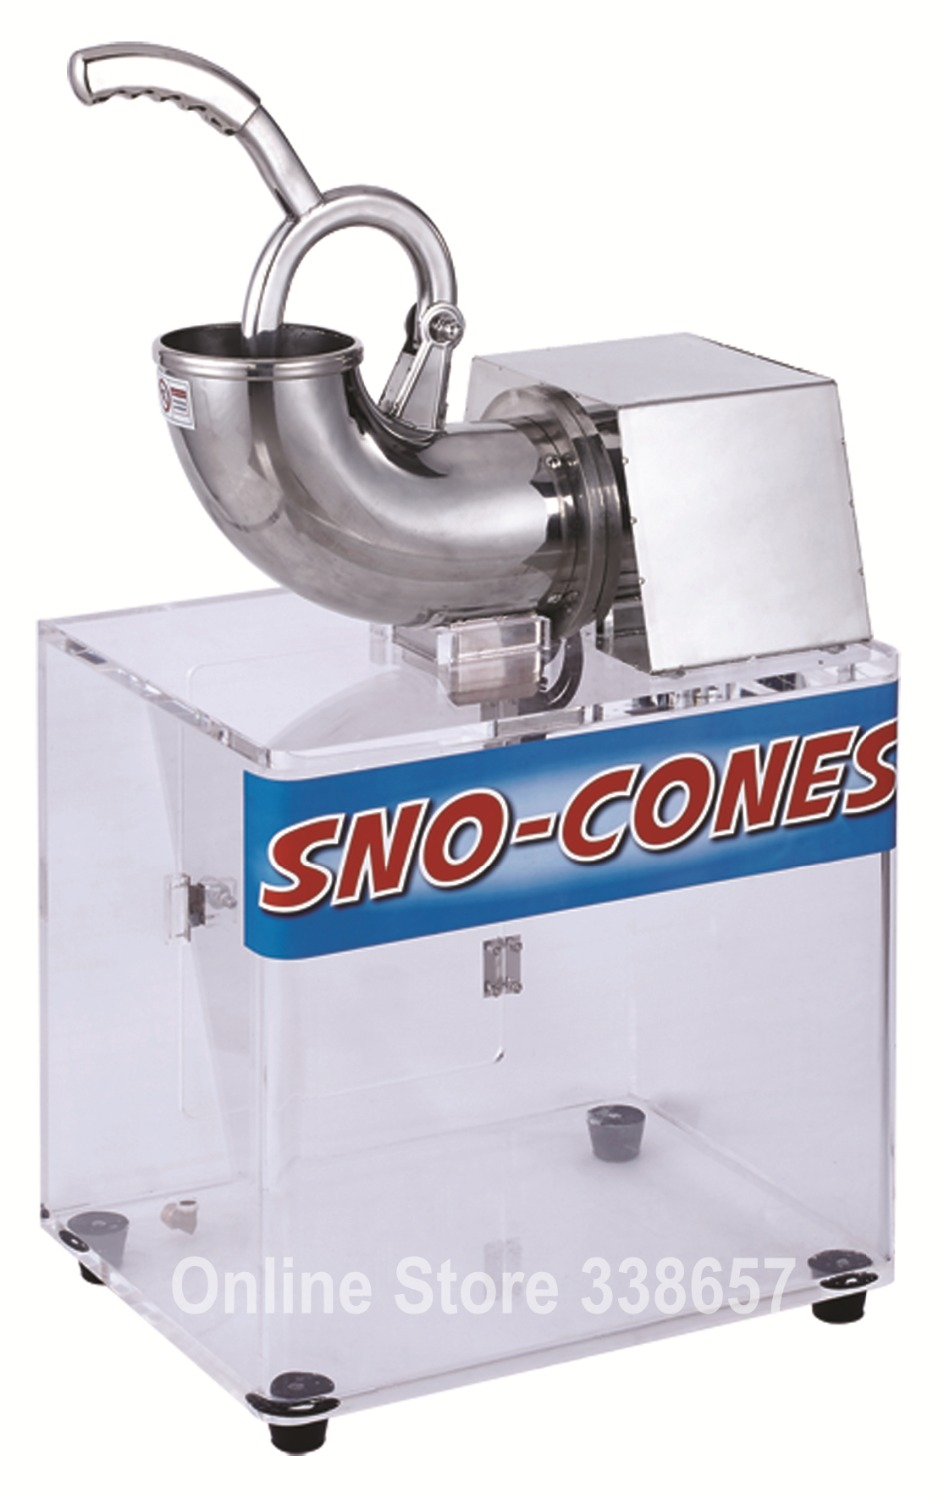 commercial restaurant electric ice crusher ice shaving machine snow cone maker mainland - Commercial Snow Cone Machine